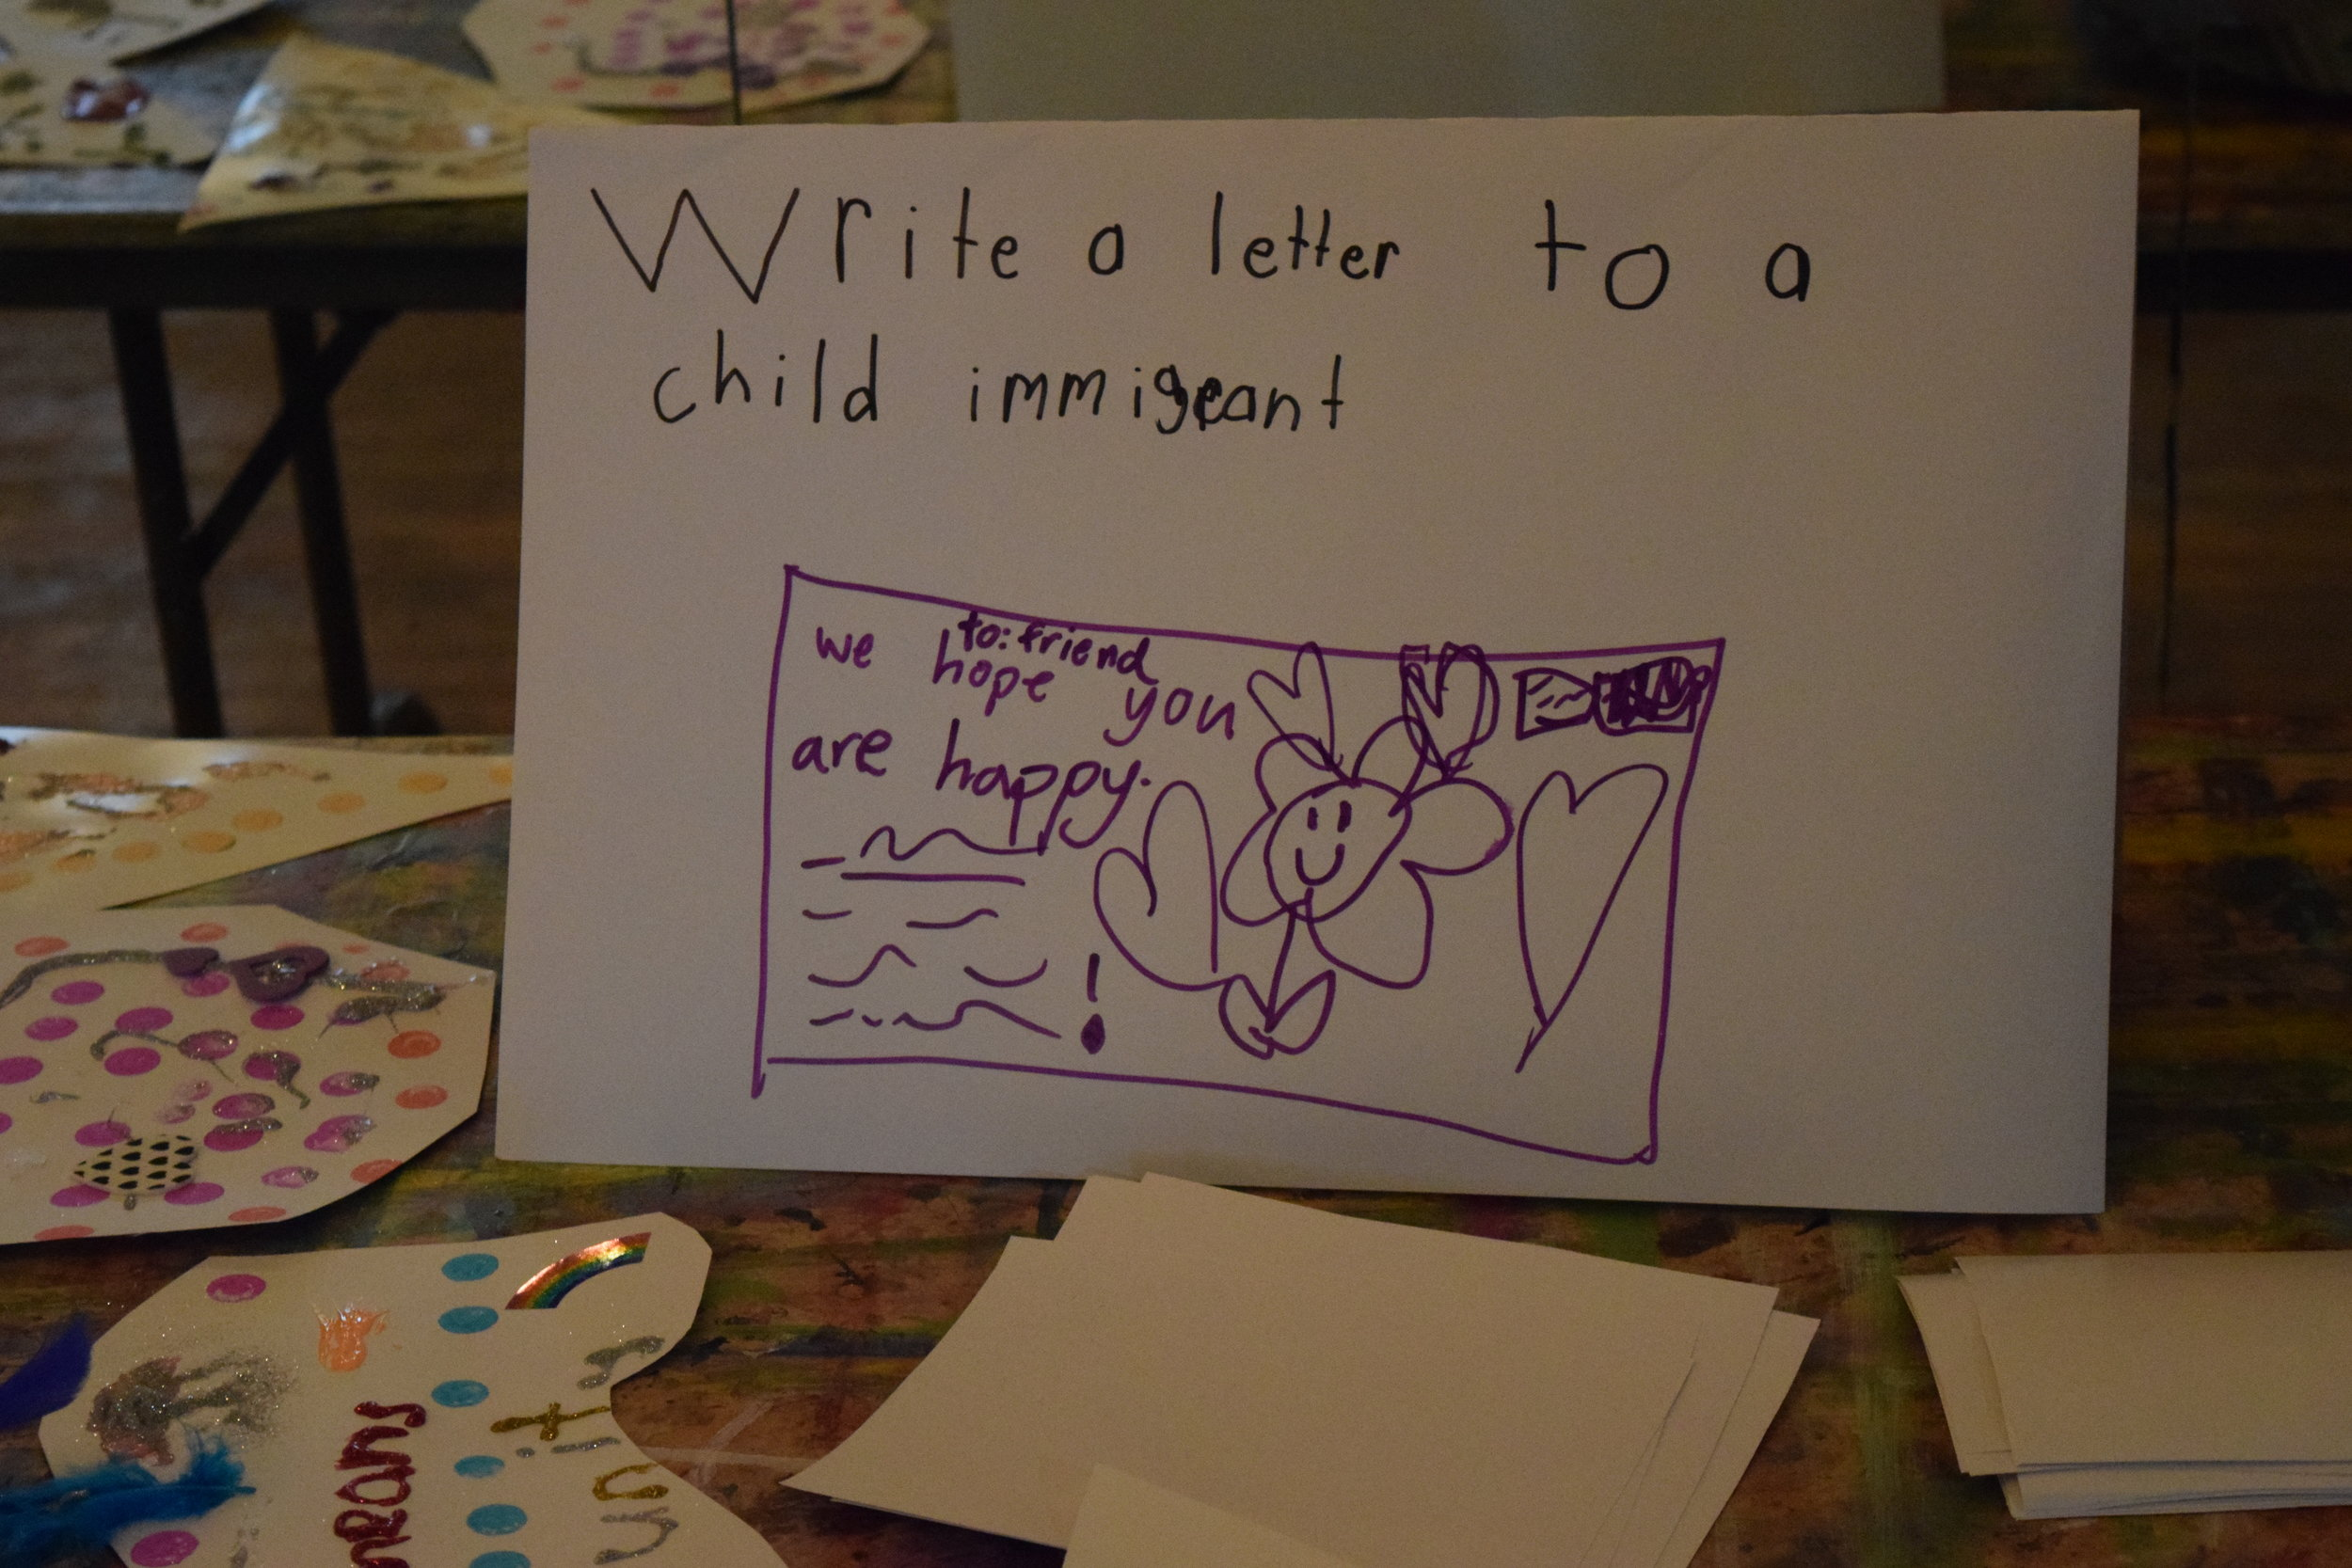 Write-Letters-to-Child-Immigrants.jpg